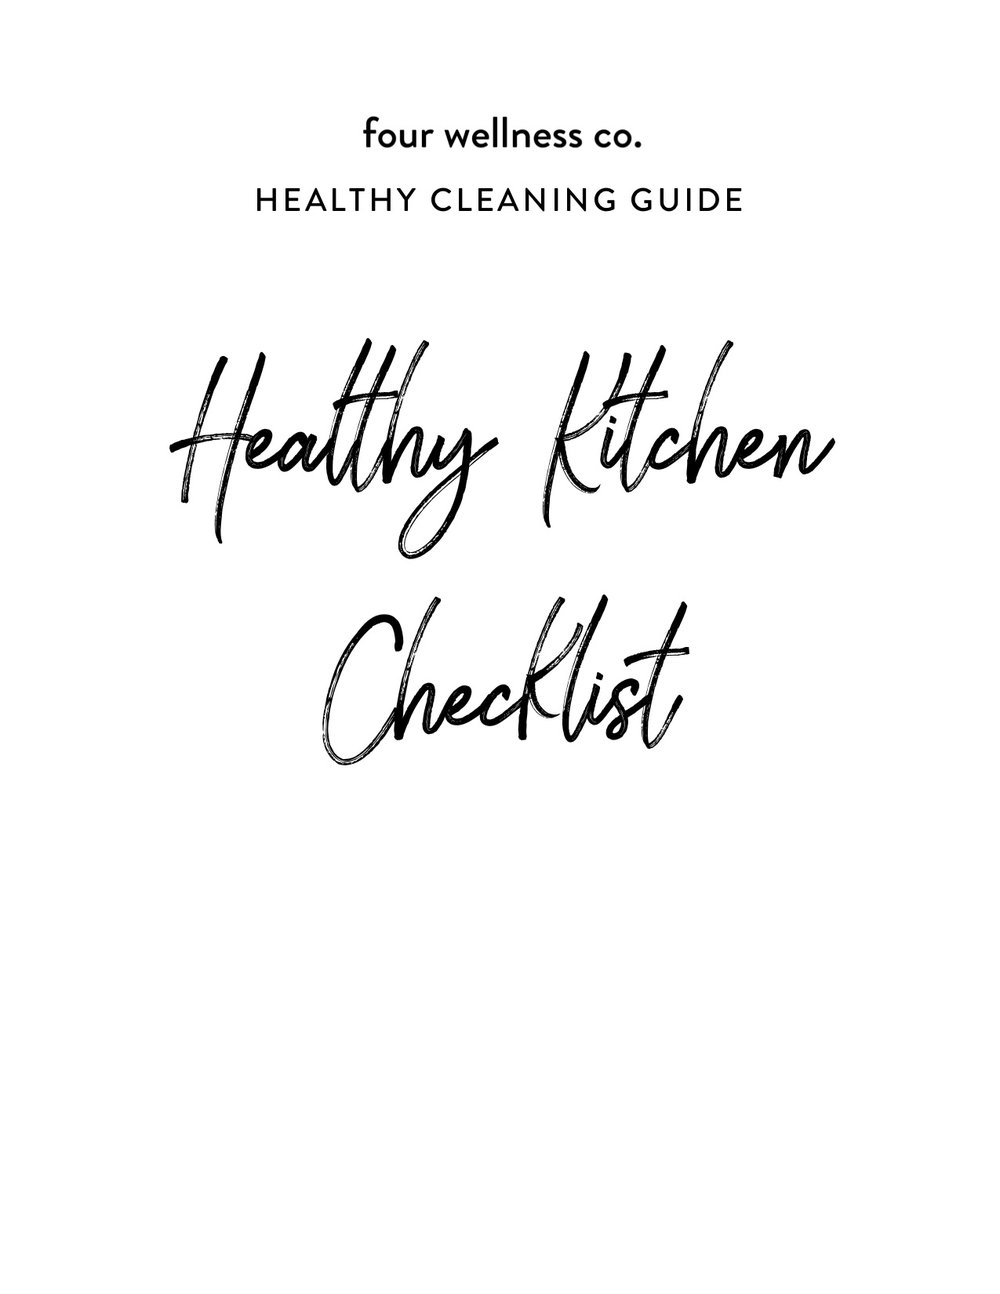 Healthy Kitchen Guide // Get the free guide to healthy kitchen supplies and practices at fourwellness.co/healthy-kitchen-guide #healthycooking #healthyeating #healthyhome